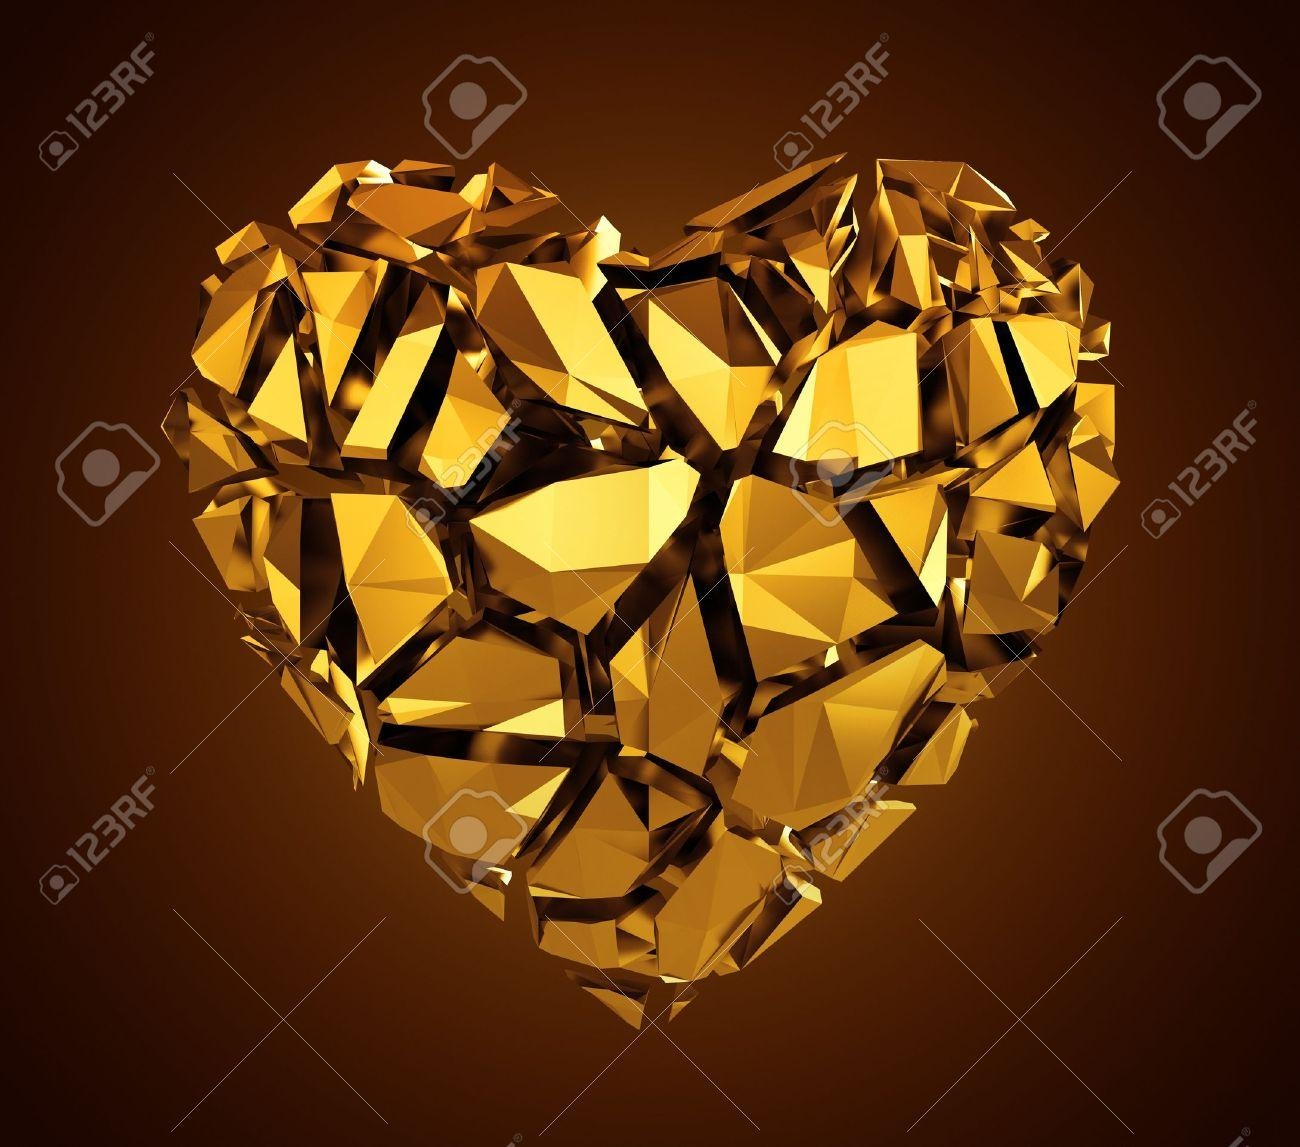 3D Broken Gold Crystal Heart Stock Photo, Picture And Royalty Free Intended For Gold Heart Mirror (View 10 of 20)